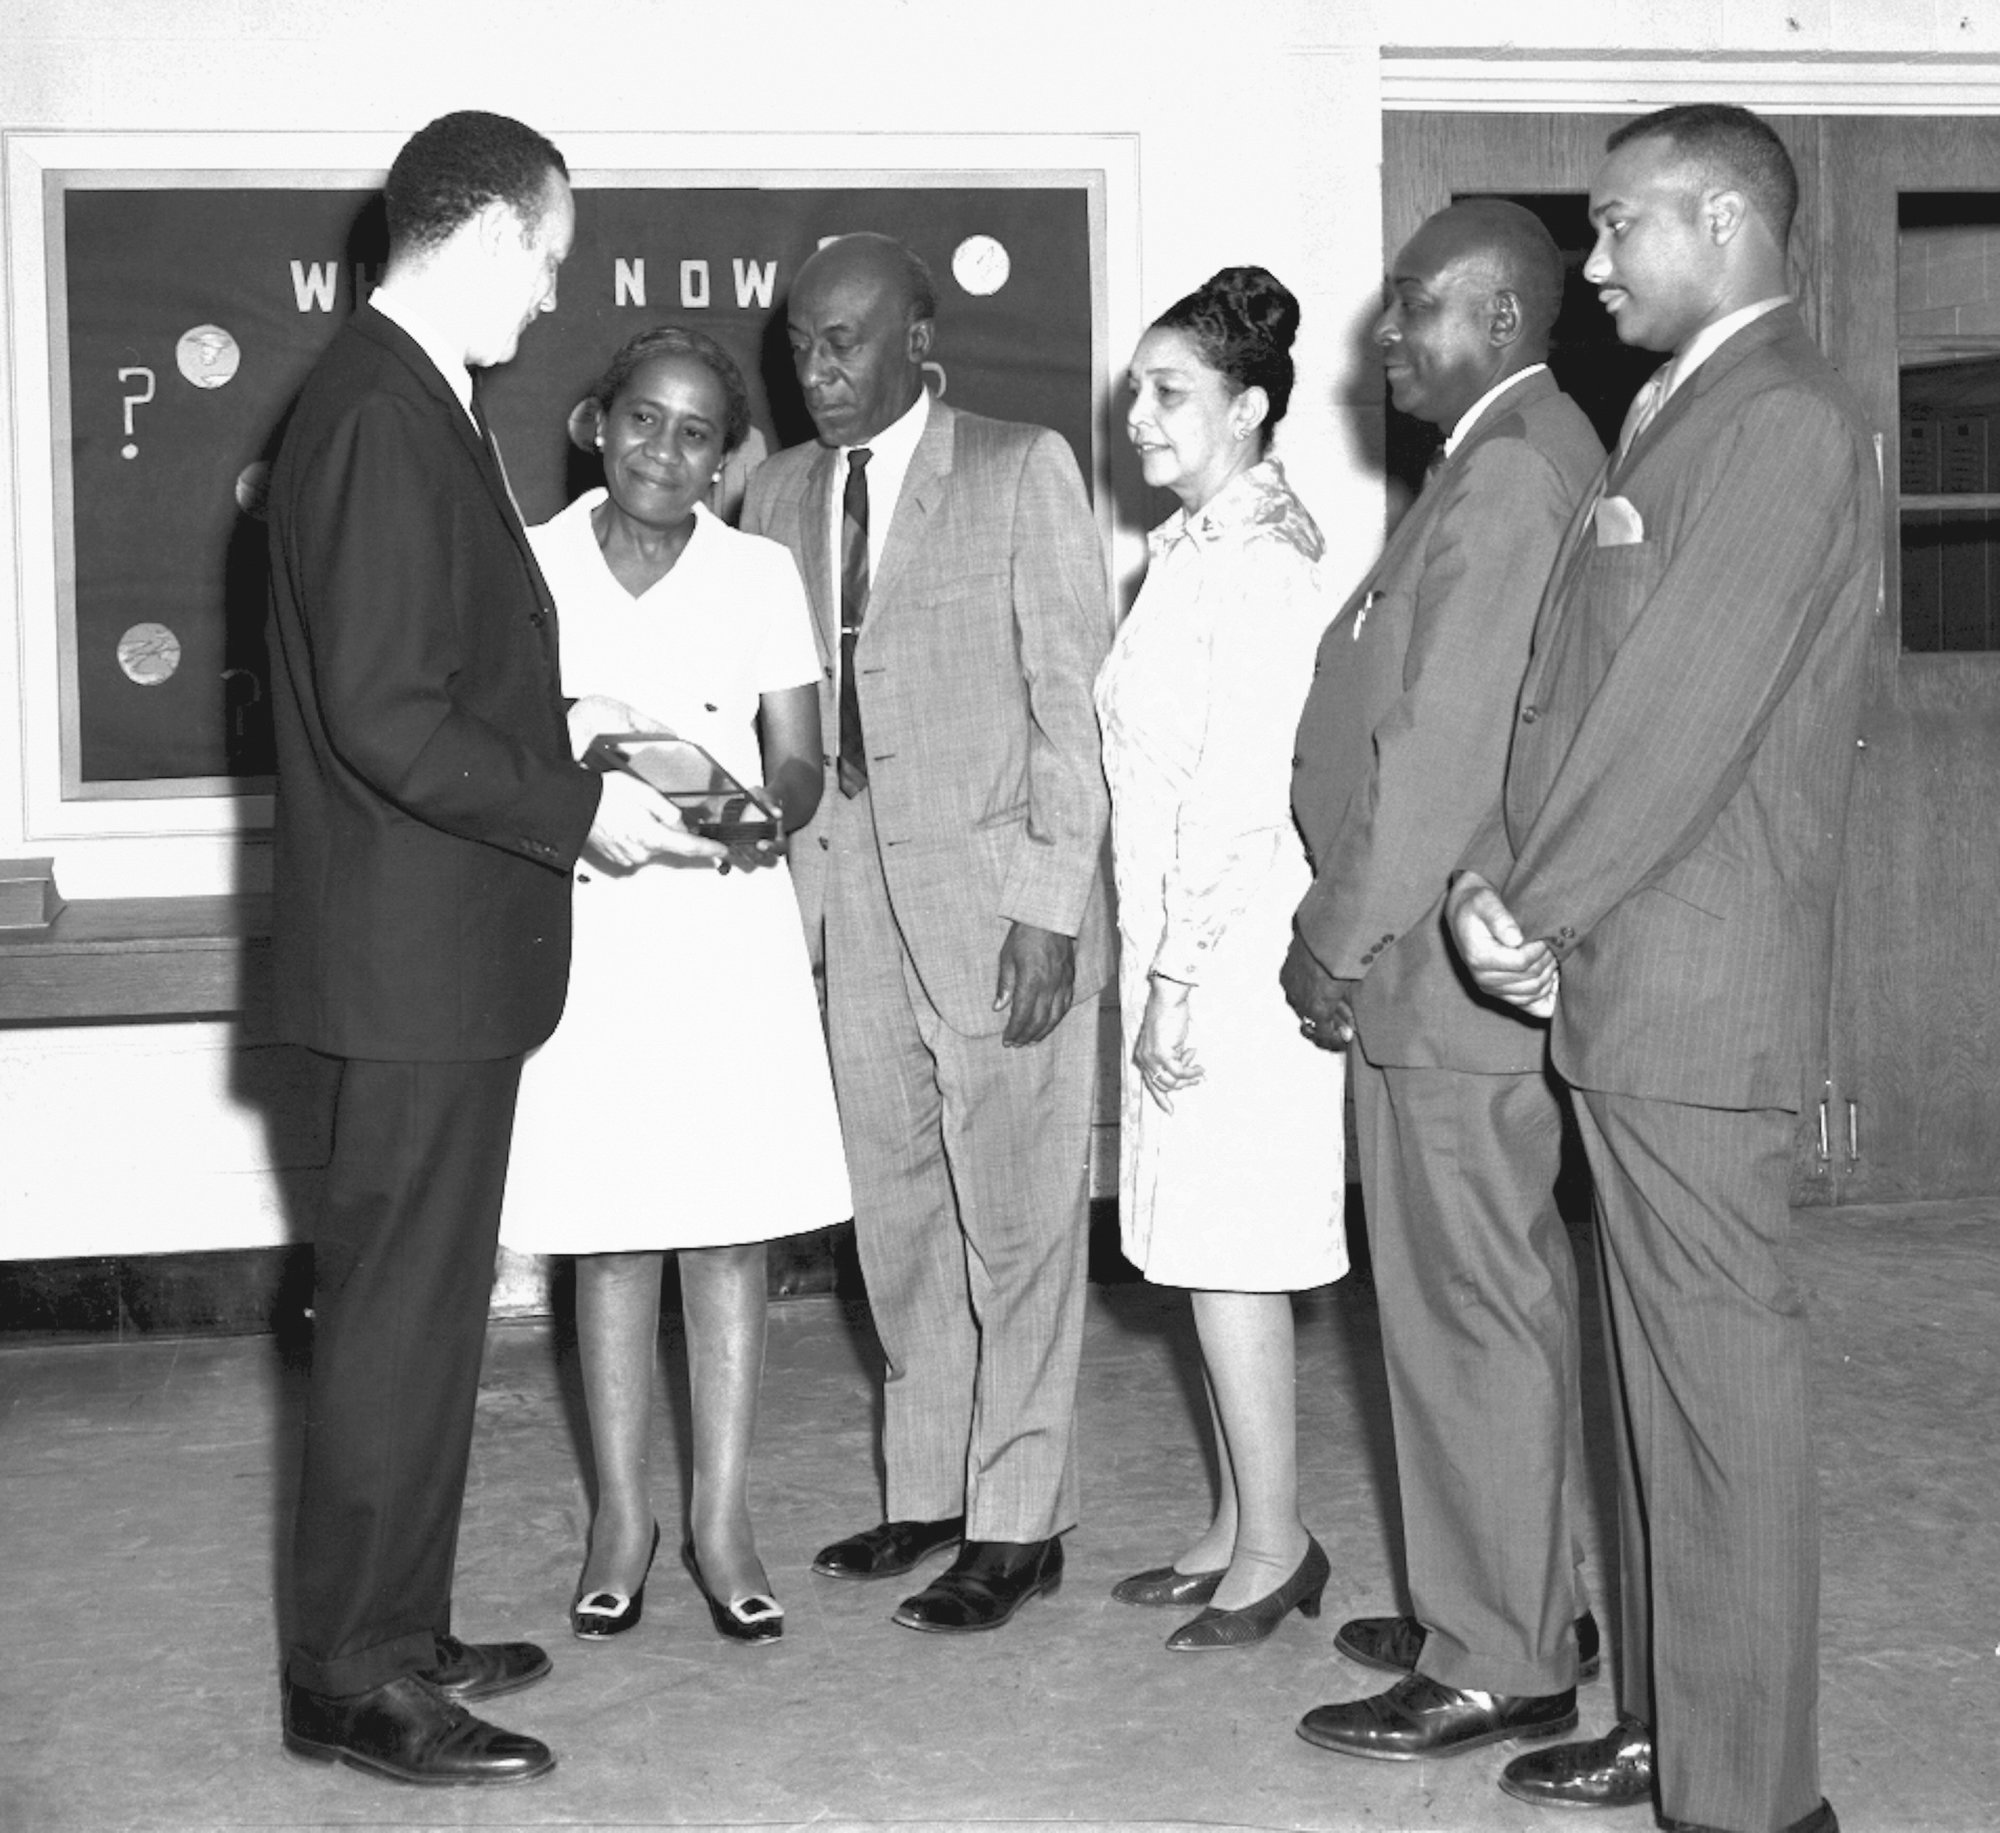 Dr. Wilson receives an award at Lincoln High School in May 1969.